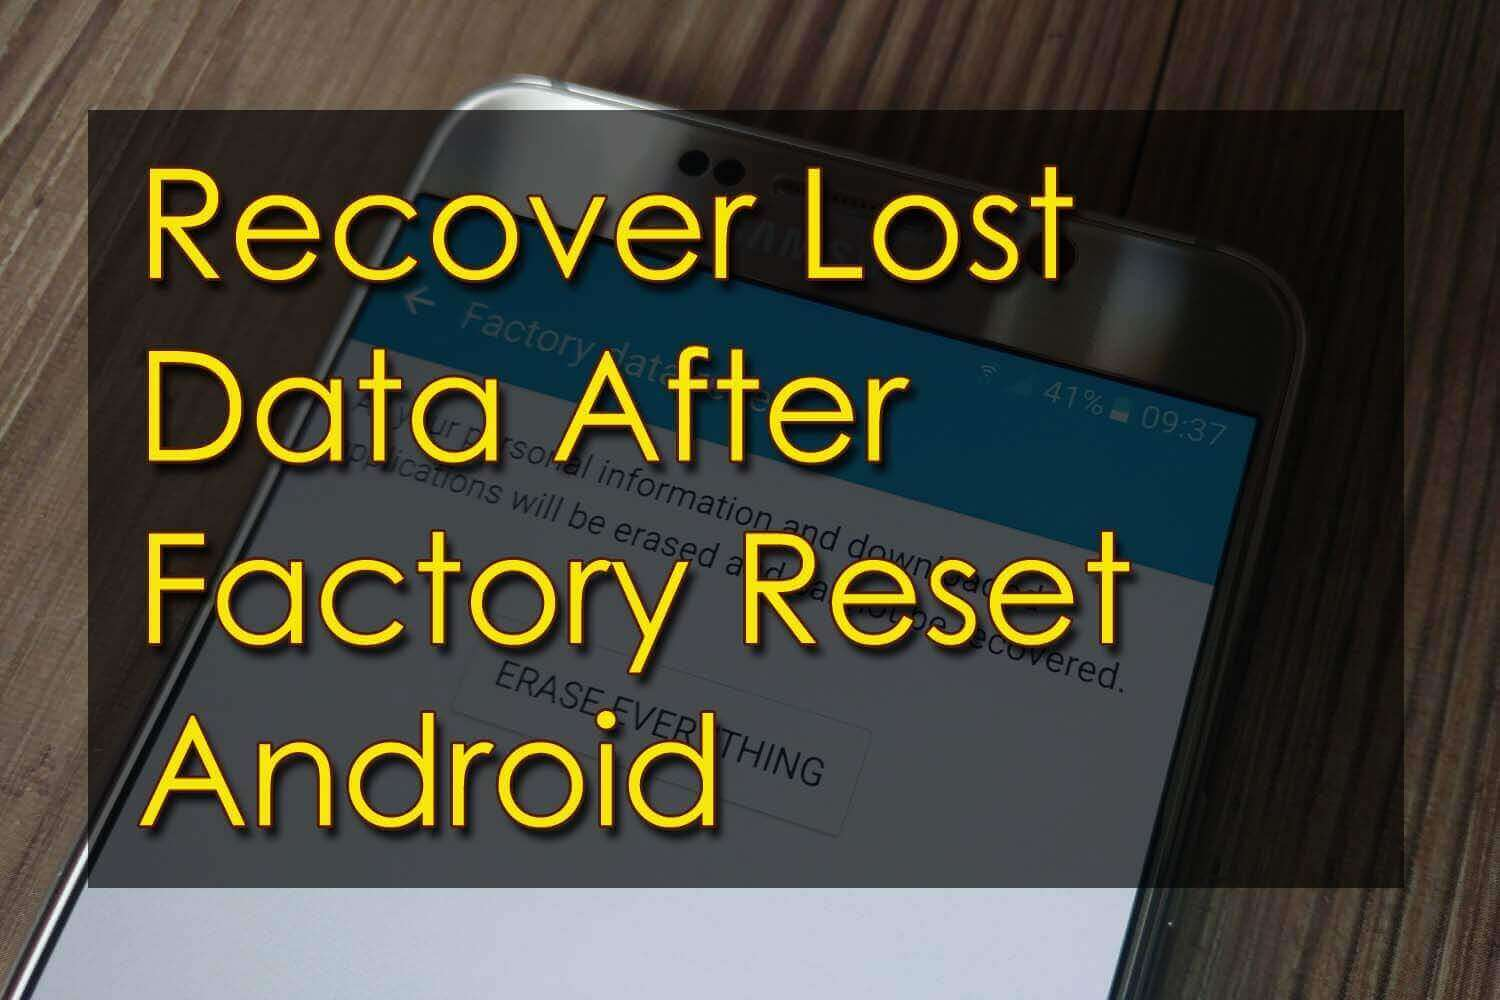 Recover Lost Data After Factory Reset Android